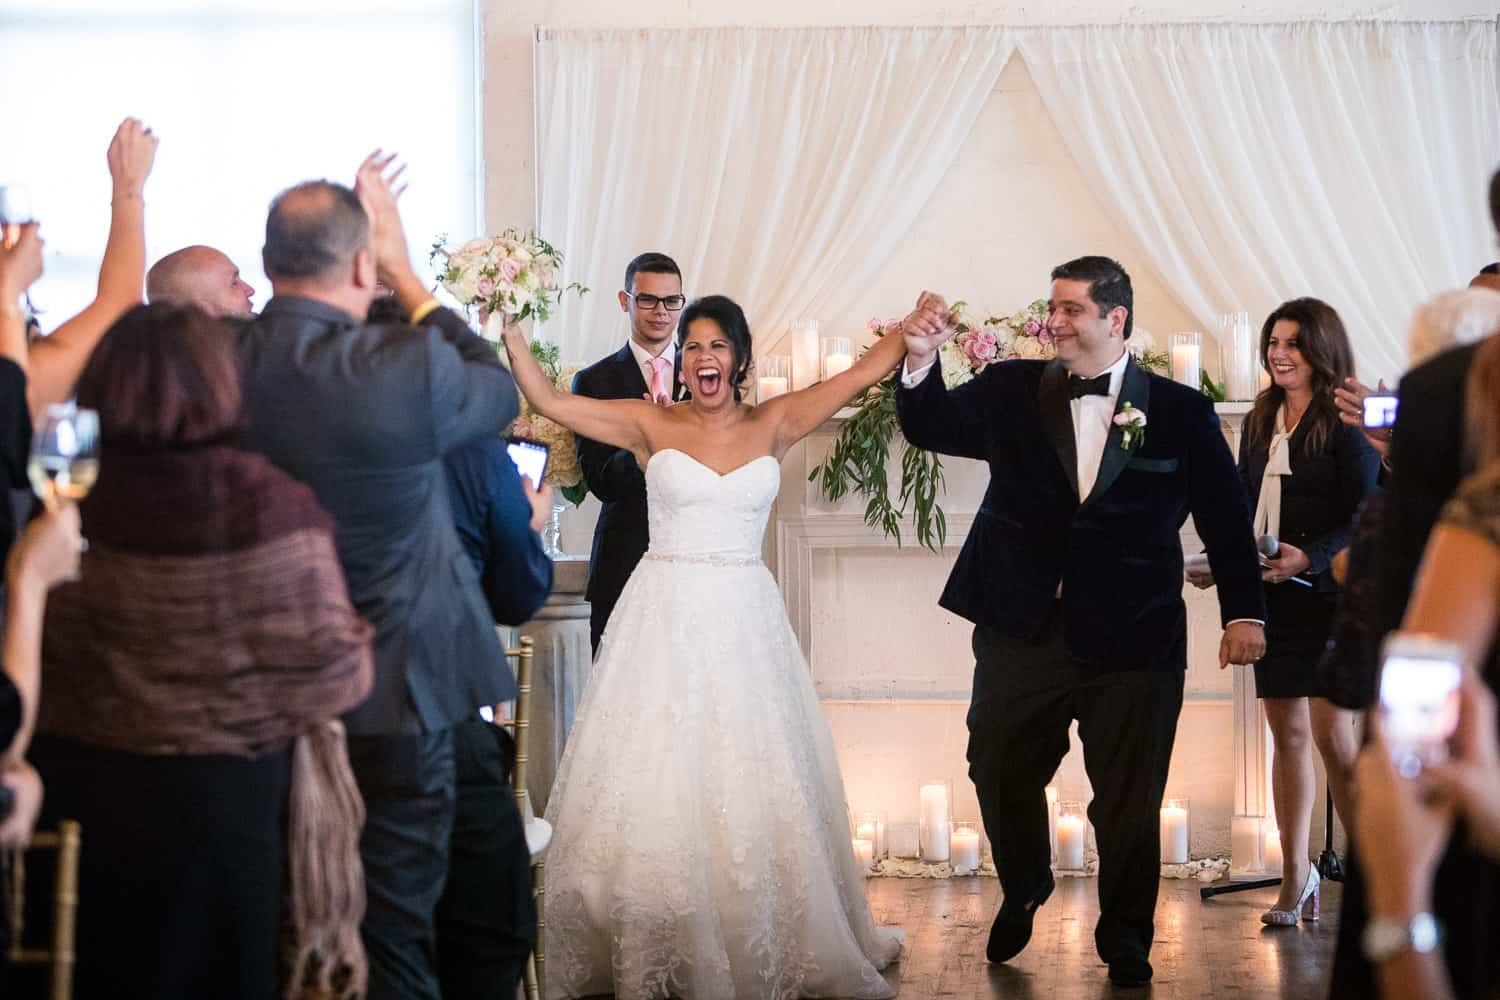 Joy and celebration at an Arbor Loft Wedding.